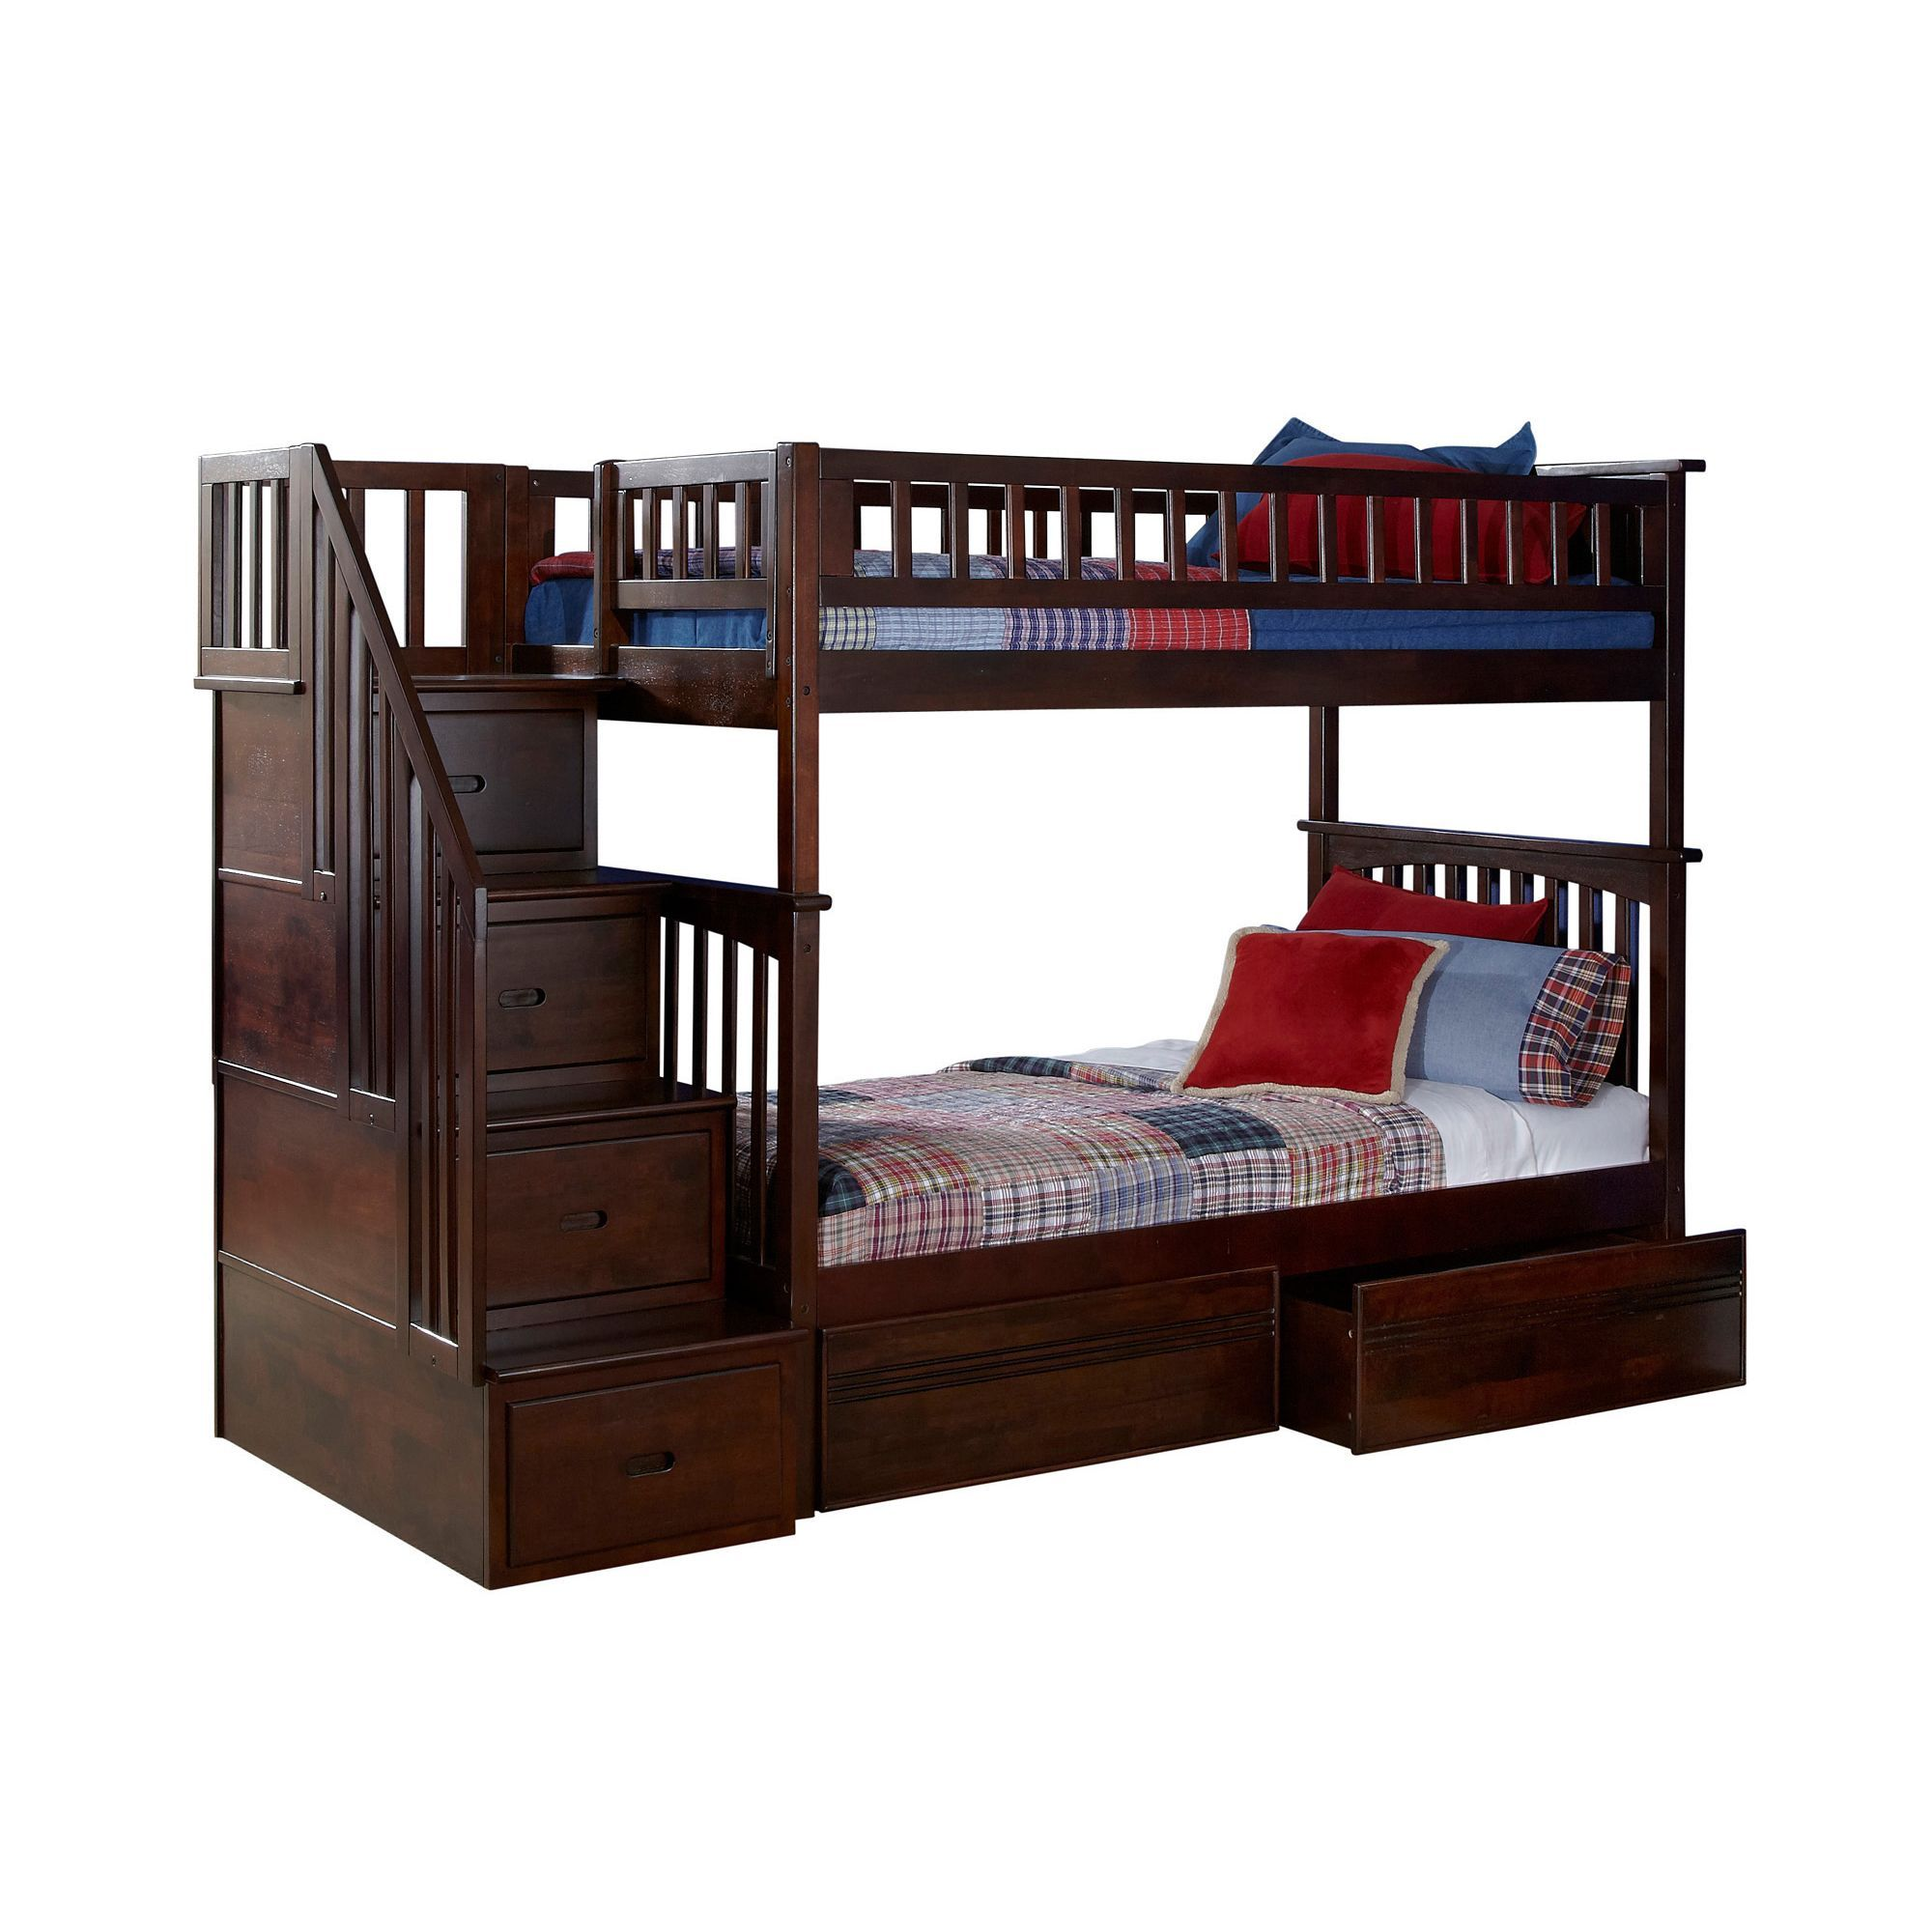 Atlantic Furniture Columbia Staircase Bunk Bed Twin over Twin with